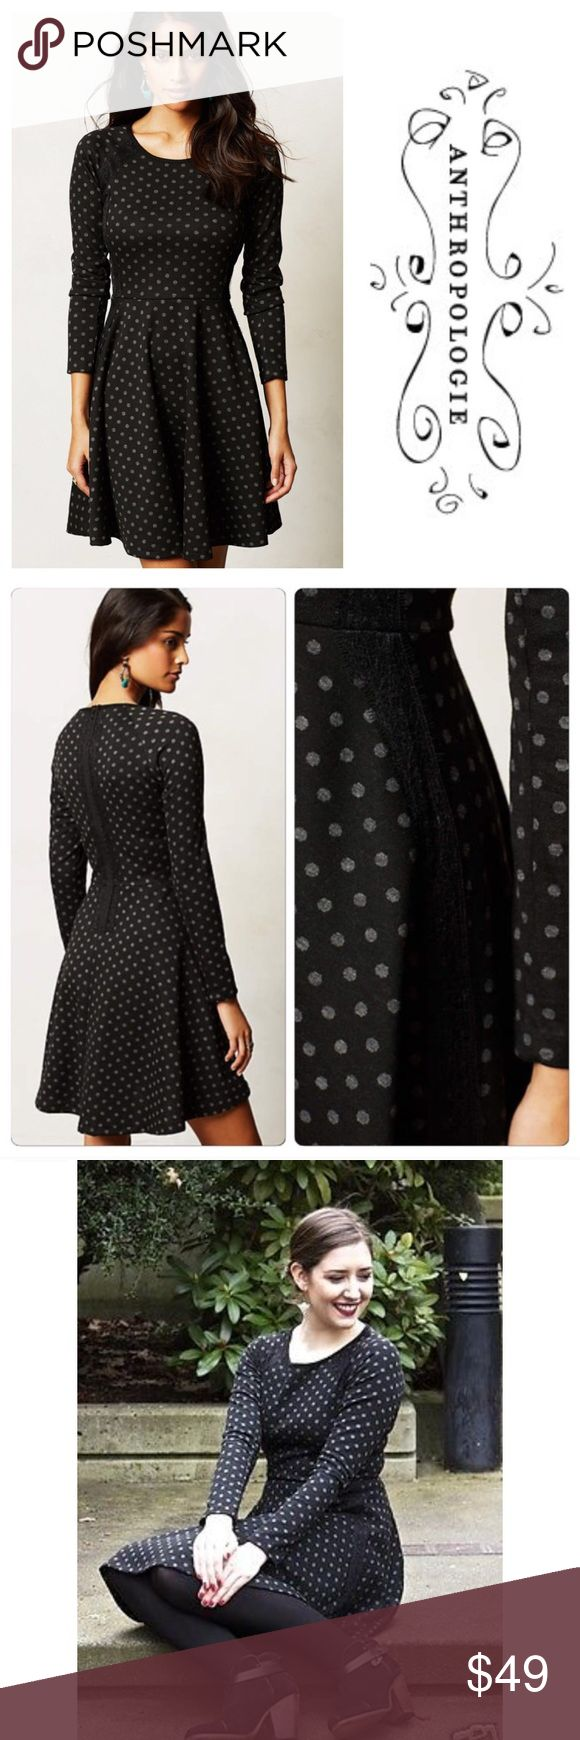 Anthropologie Weston Wear Laced Framed Dress M Anthropologie Weston Wear Laced Framed Dress Black Grey Dots Stretch  Sz M Excellent preloved preloved condition, no pilling or rubbing, no imperfections  Black background with gray polkadots Back zipper Fitted bodice and flared skirt Long sleeves Made in San Francisco 68/31/1 polyester/rayon/spandex Fabric has some stretch Black lace detailing Measured flat 19.5 inch sleeve inseam 17 inch bust  14 inch natural waist 37 inch length Anthropologie…